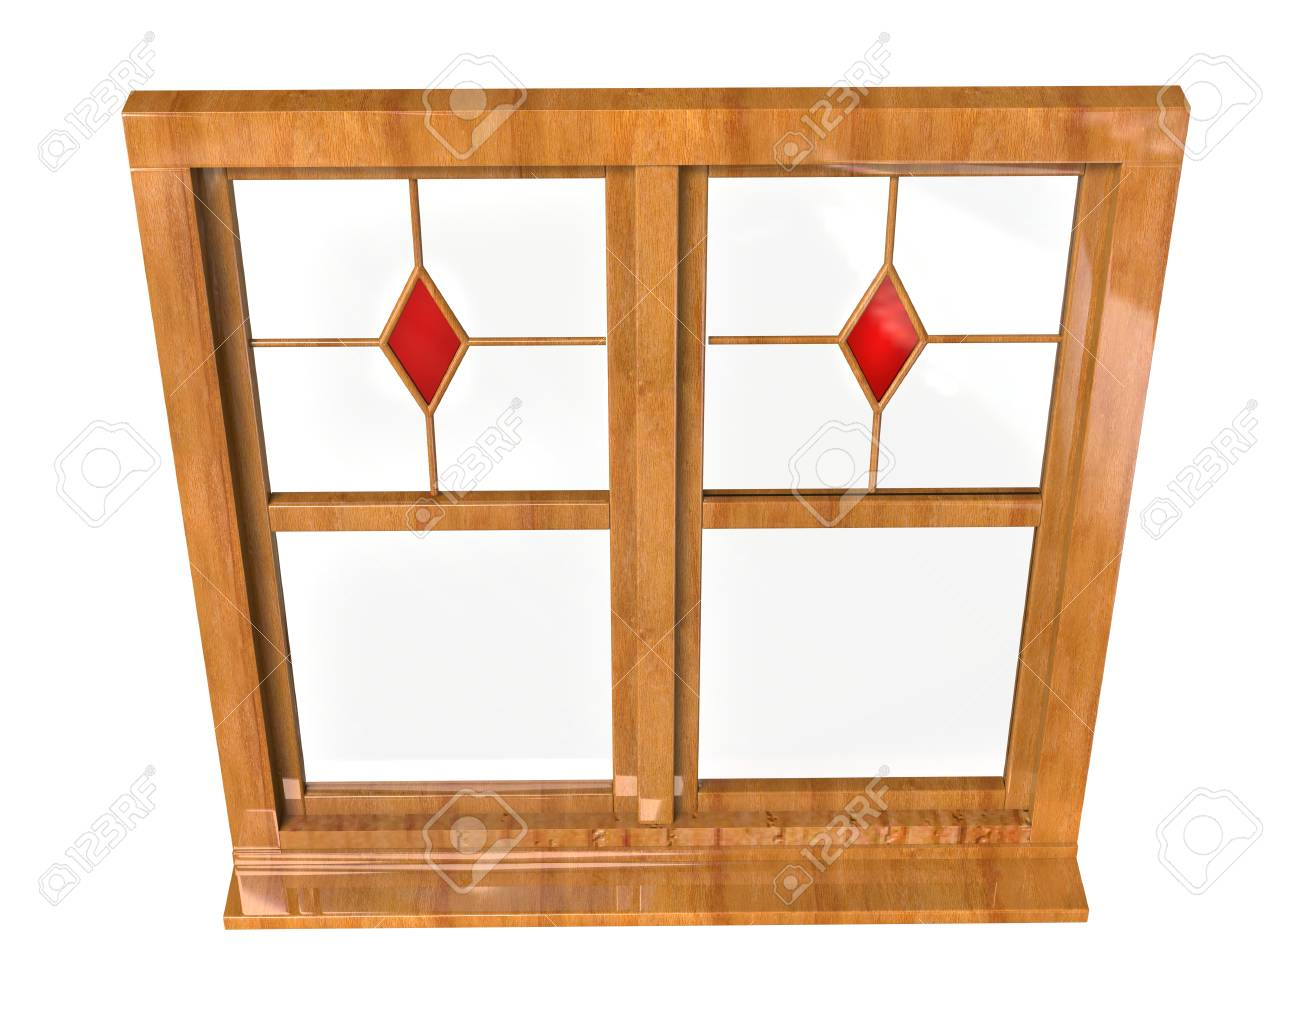 Wooden Window Frame With Stained Glass